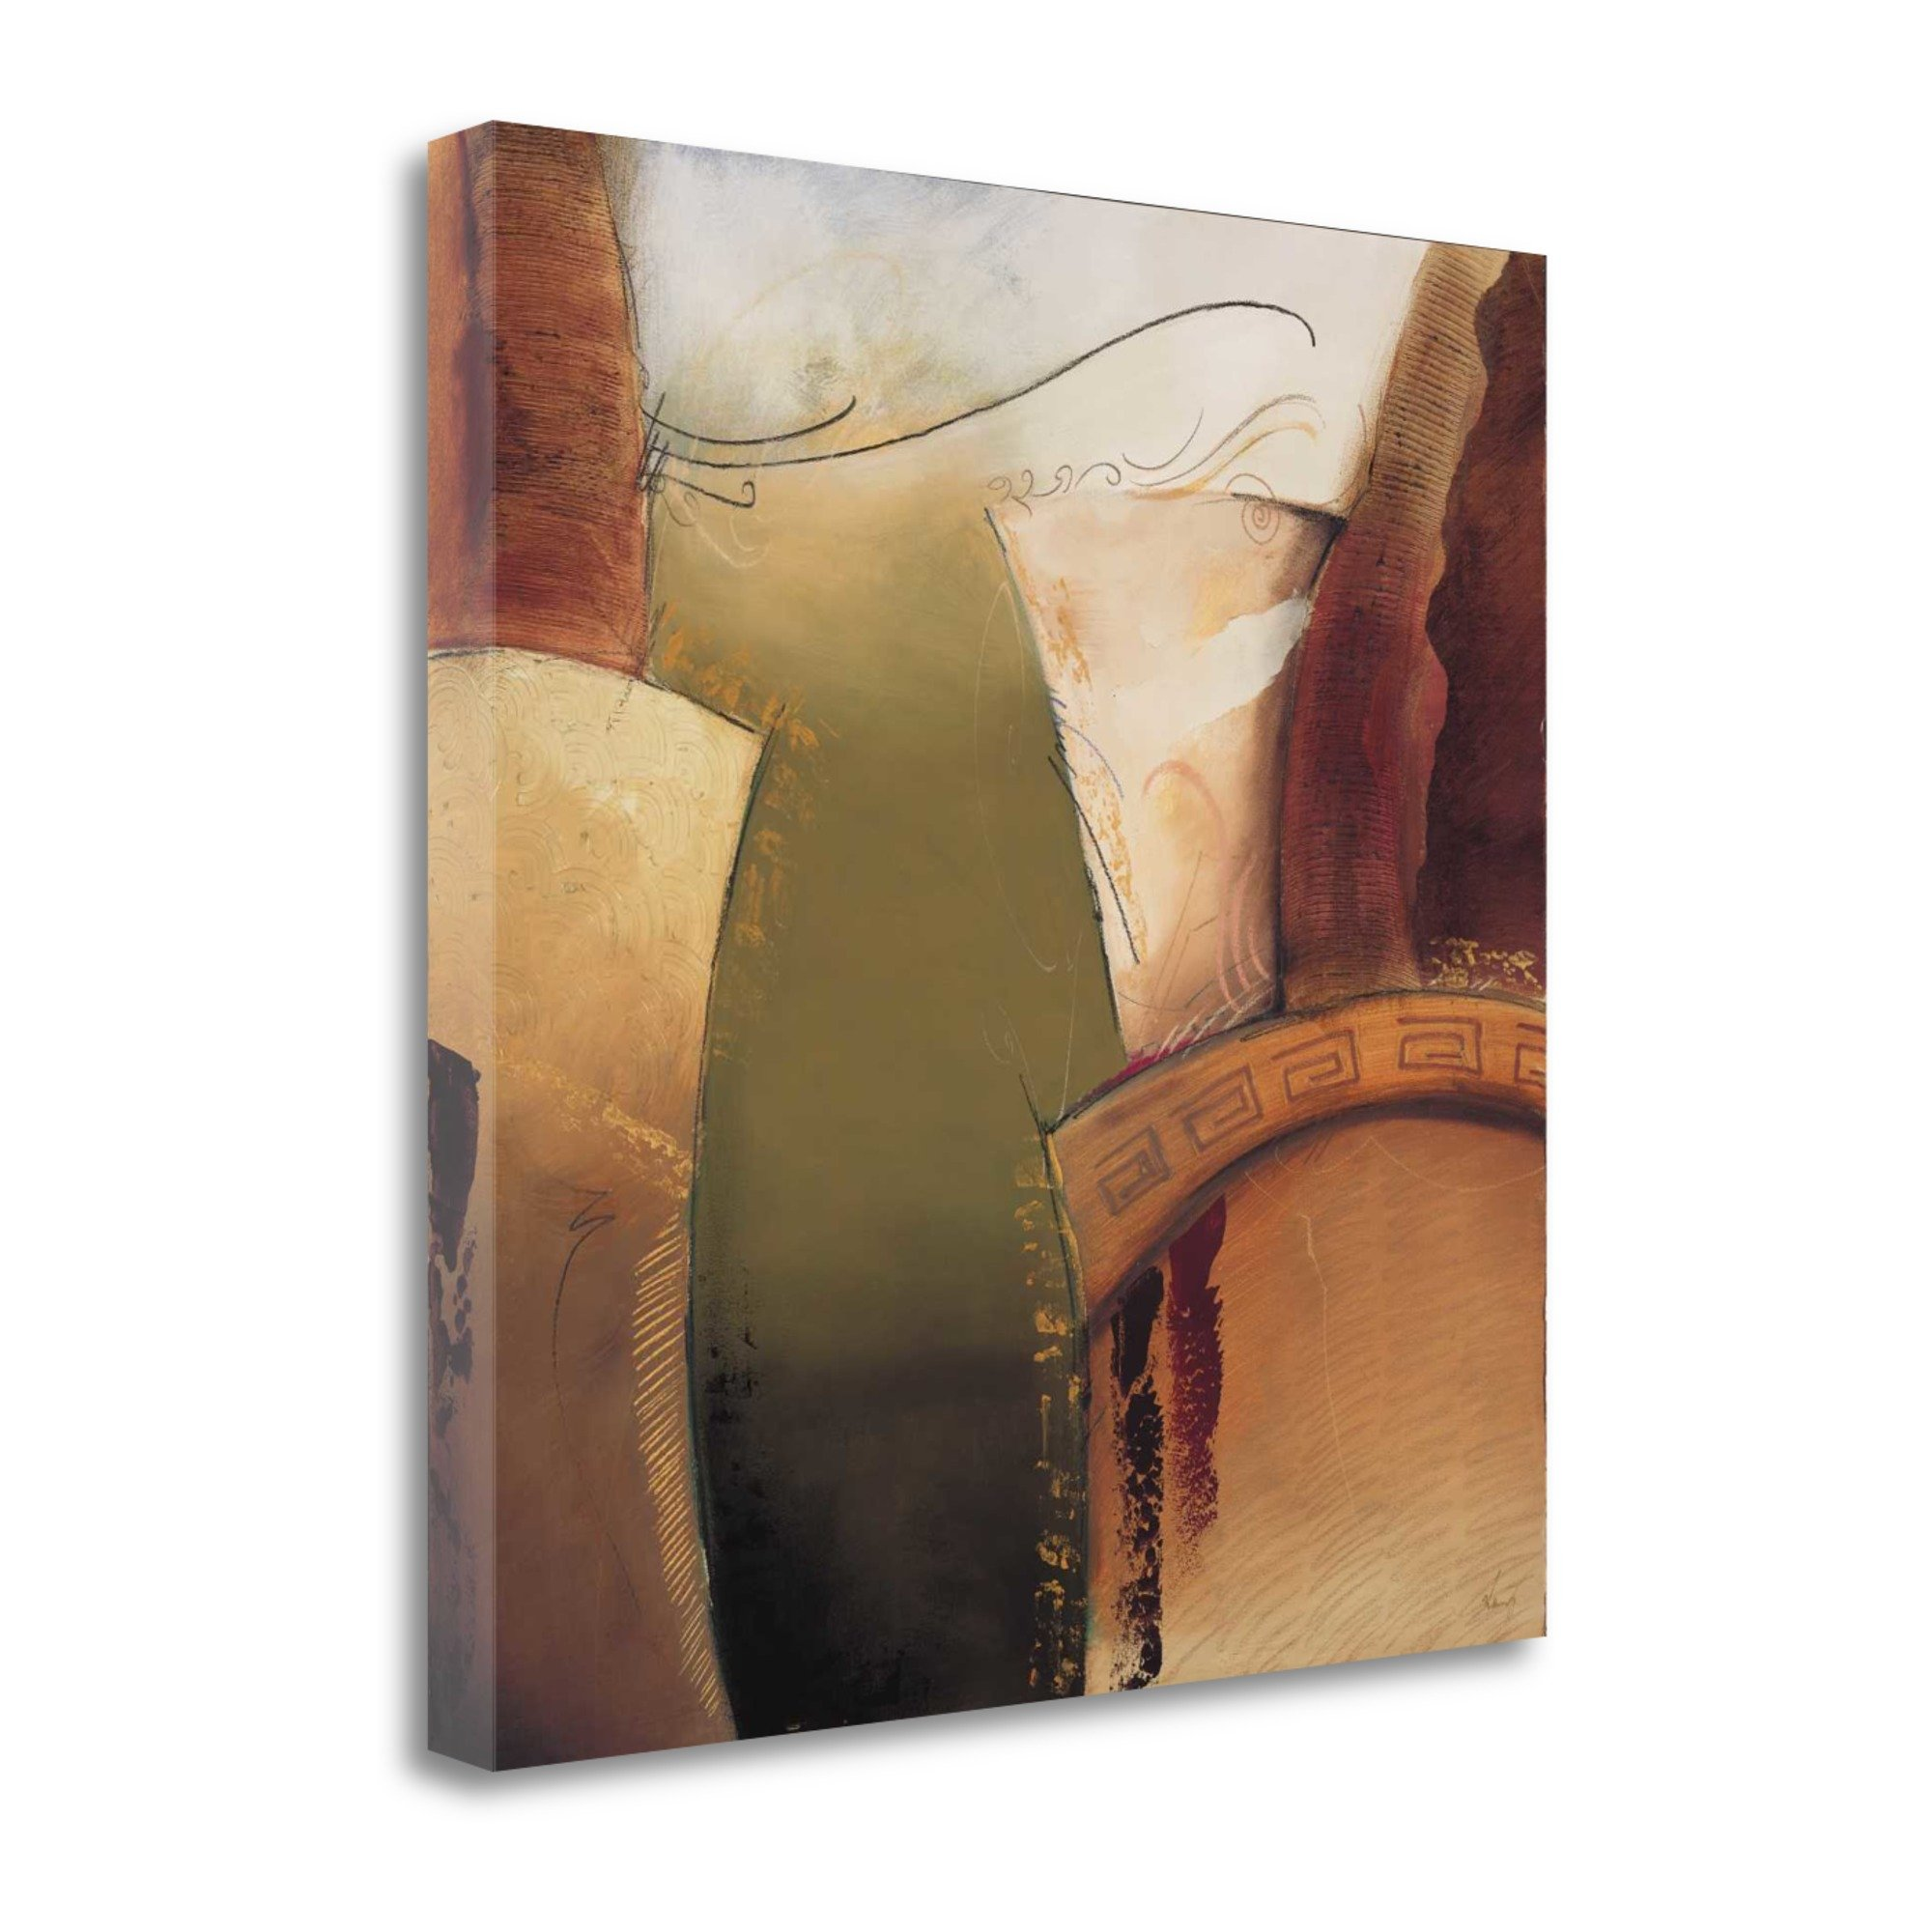 ''Emerging II'' By Kamy, Fine Art Giclee Print on Gallery Wrap Canvas, Ready to Hang by Tangletown Fine Art